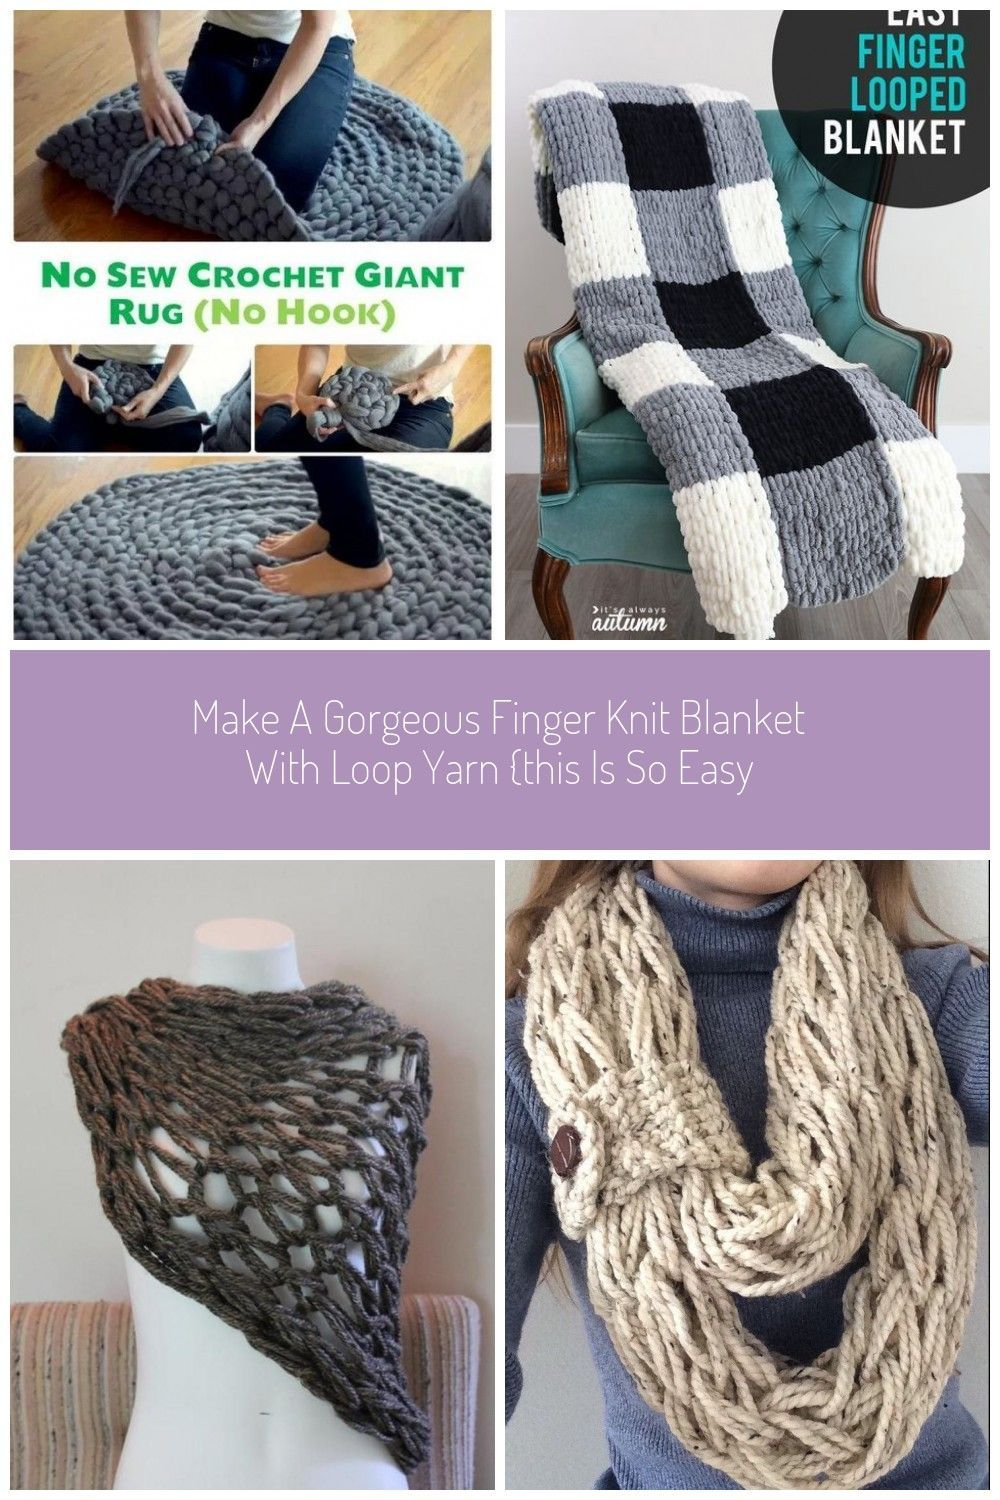 Great Free Of Charge Arm Knitting Instructions Style Trendy Chunky